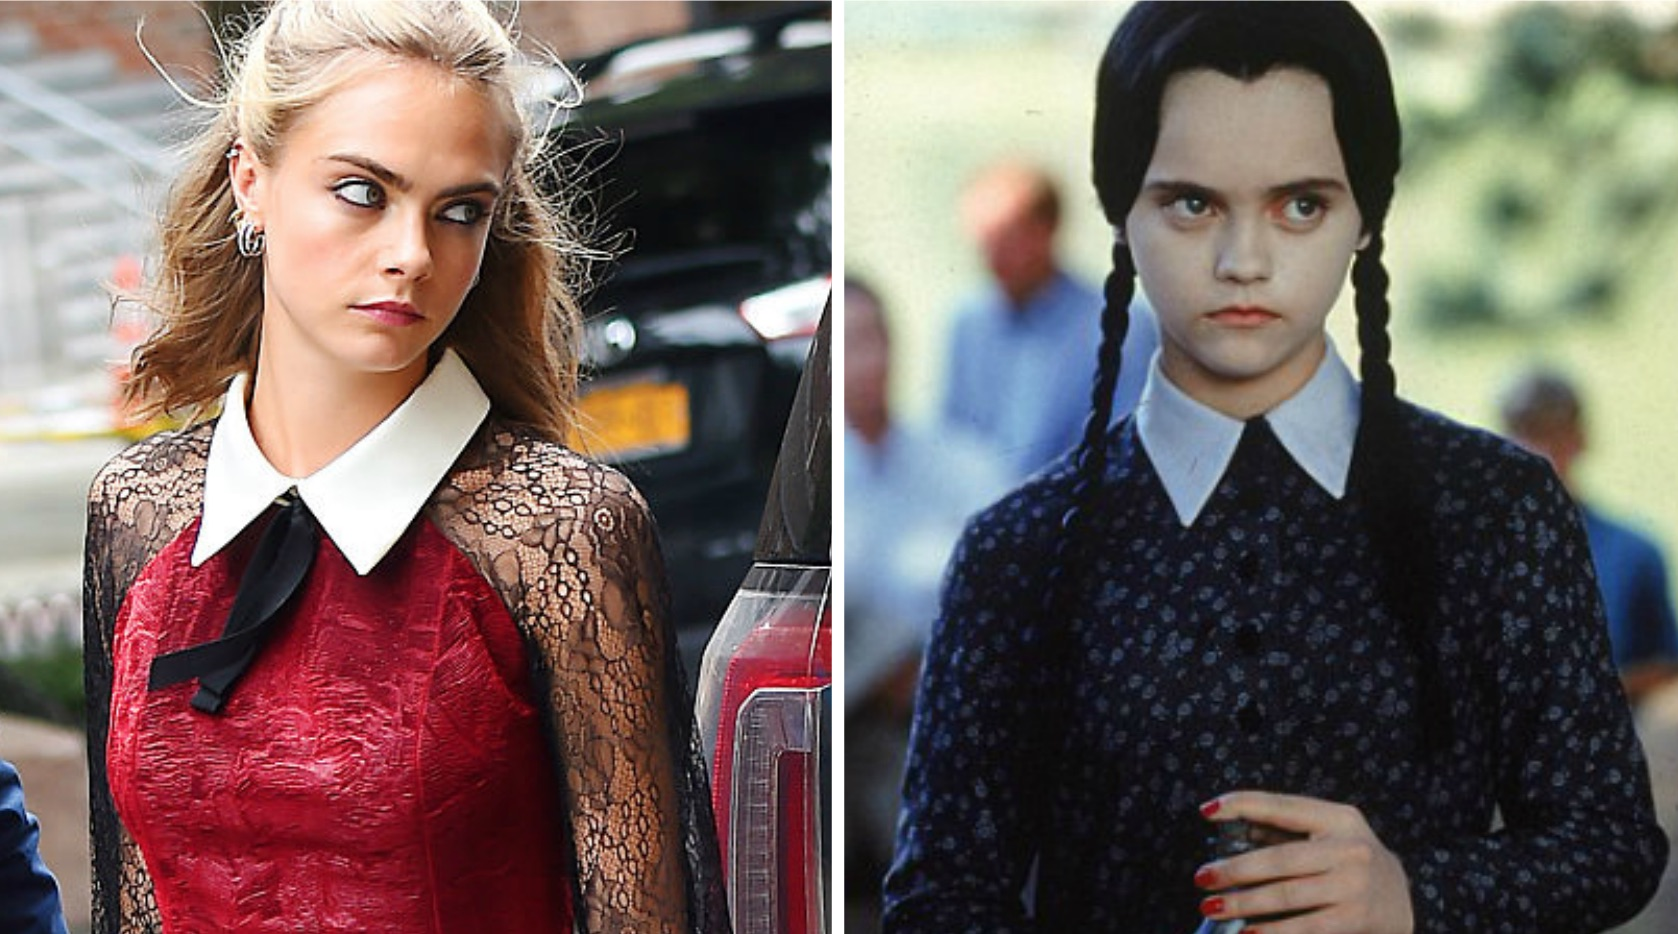 Cara Delevingne Looks Like A Modern Day Wednesday Addams